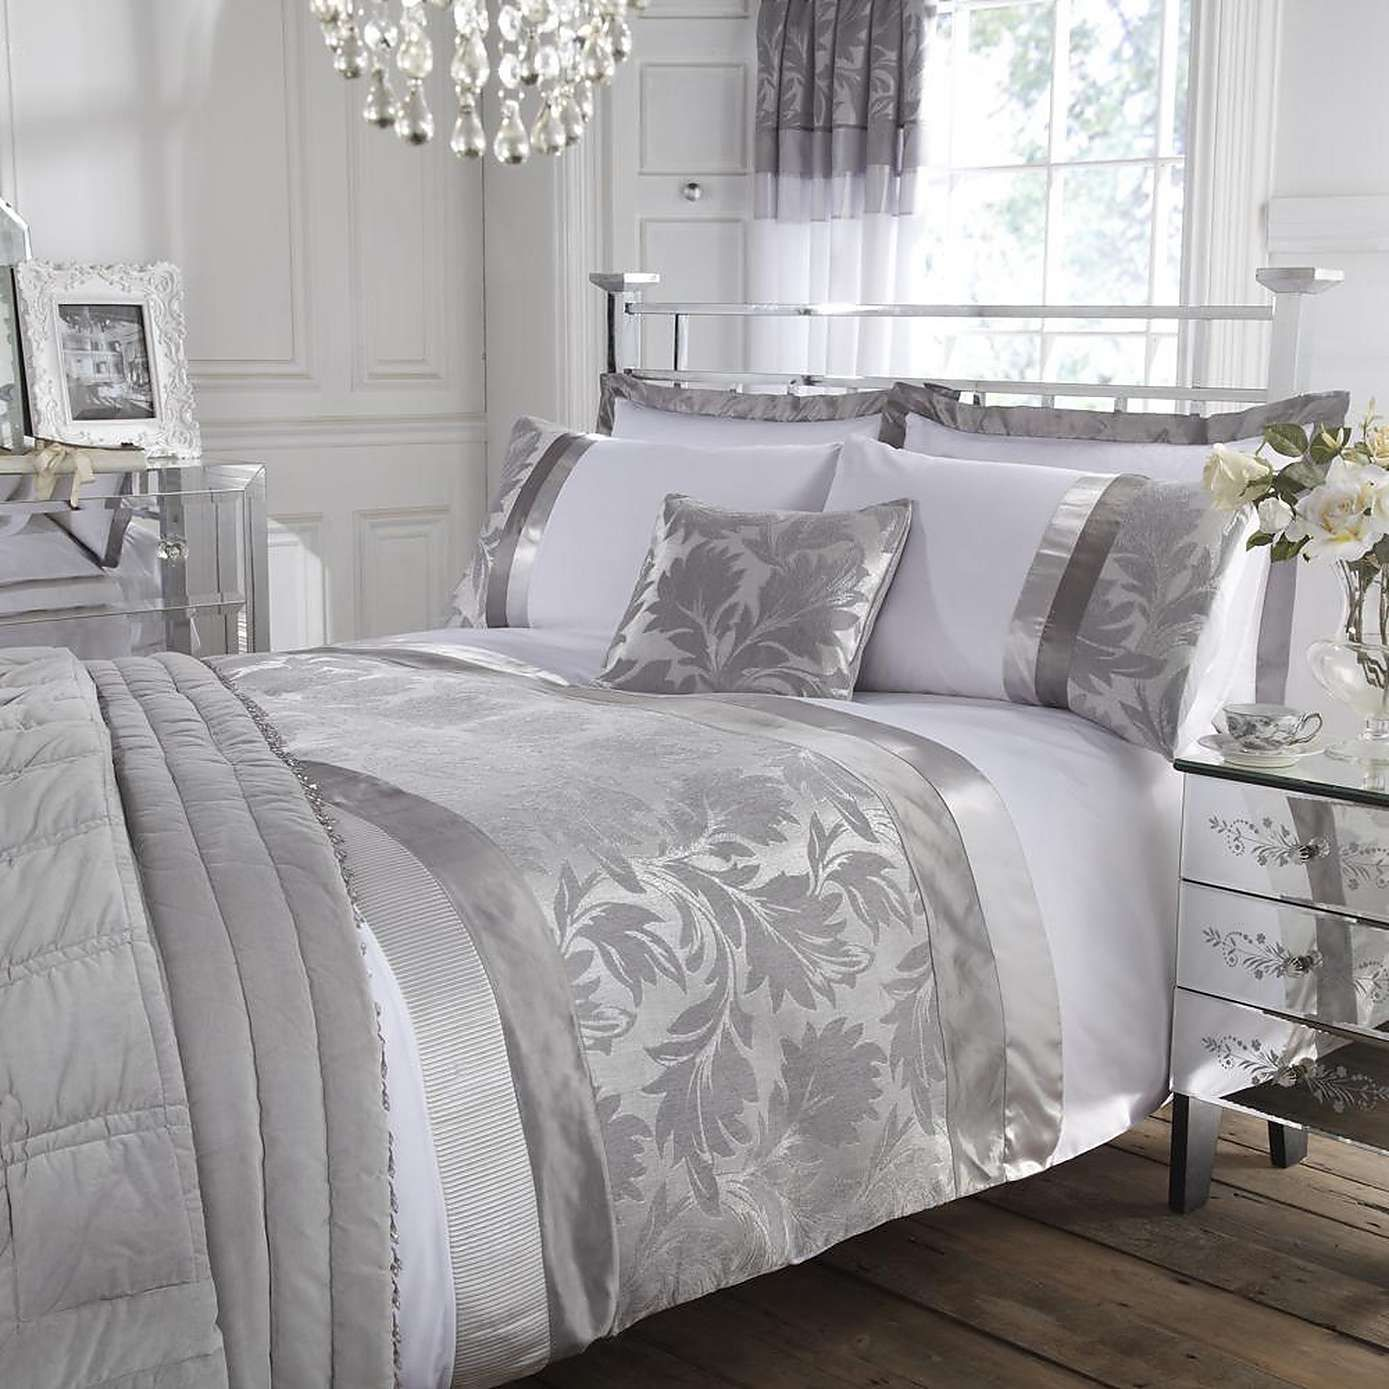 Roma silver damask jacquard duvet cover home sweet home - Grey white and silver bedroom ideas ...